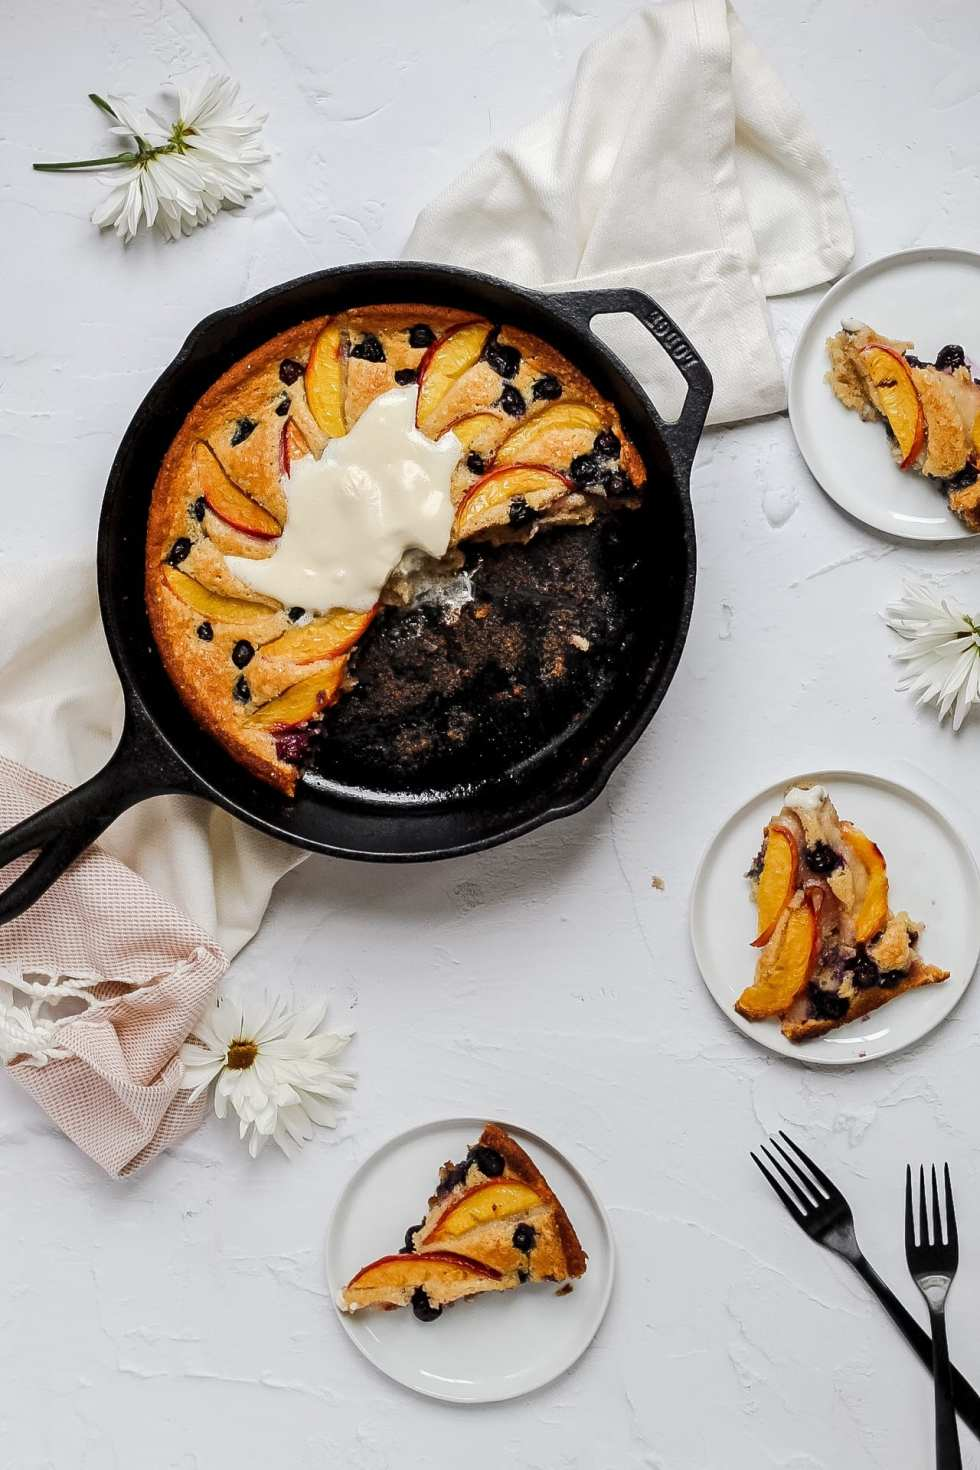 peach blueberry cobbler with whipped cream and pieces cut out